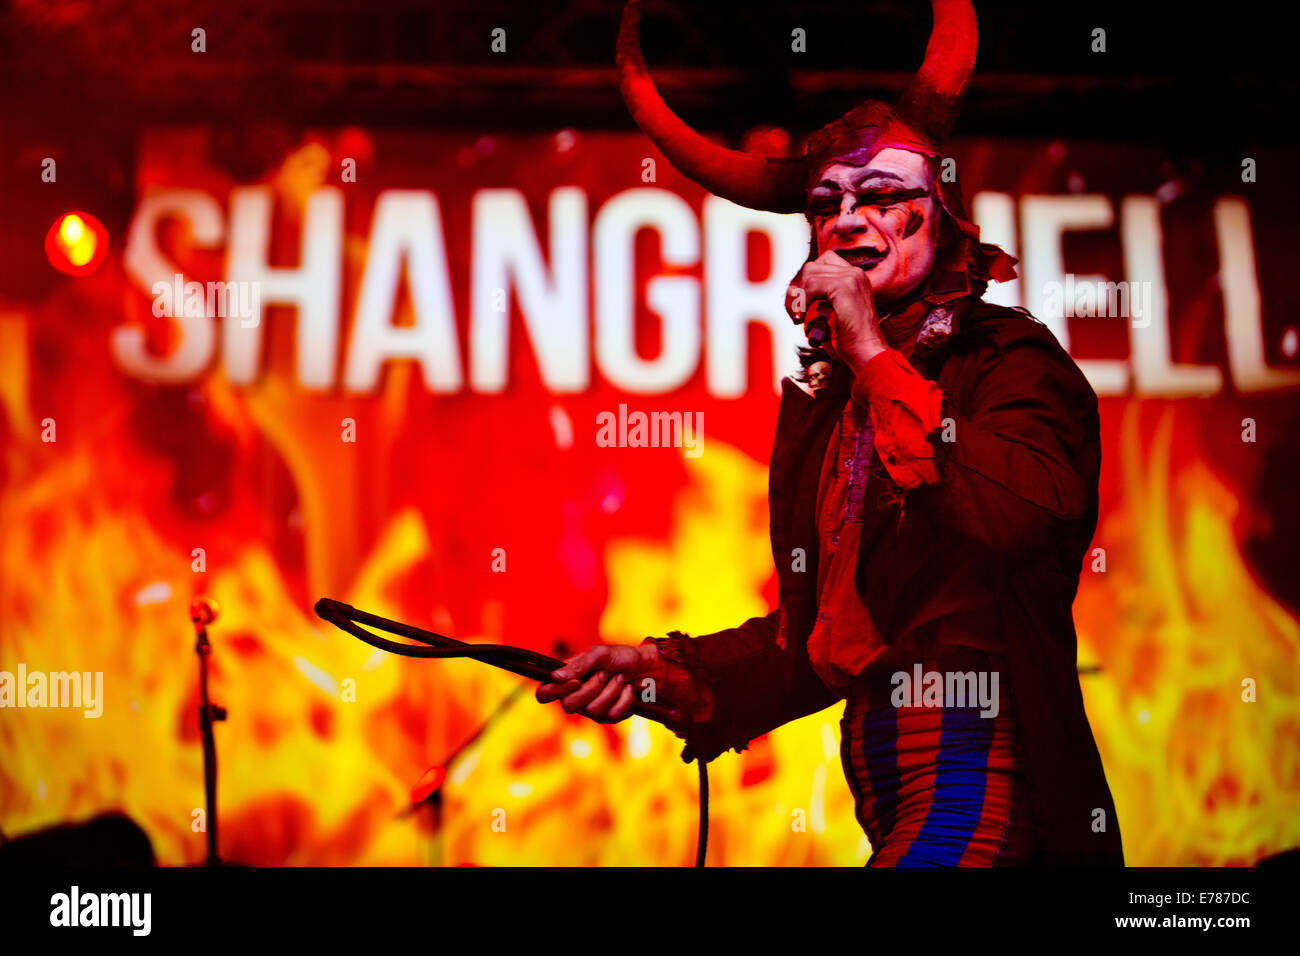 Glastonbury Festival 2014. The devil enters the Hell stage in Shangri-La - Stock Image